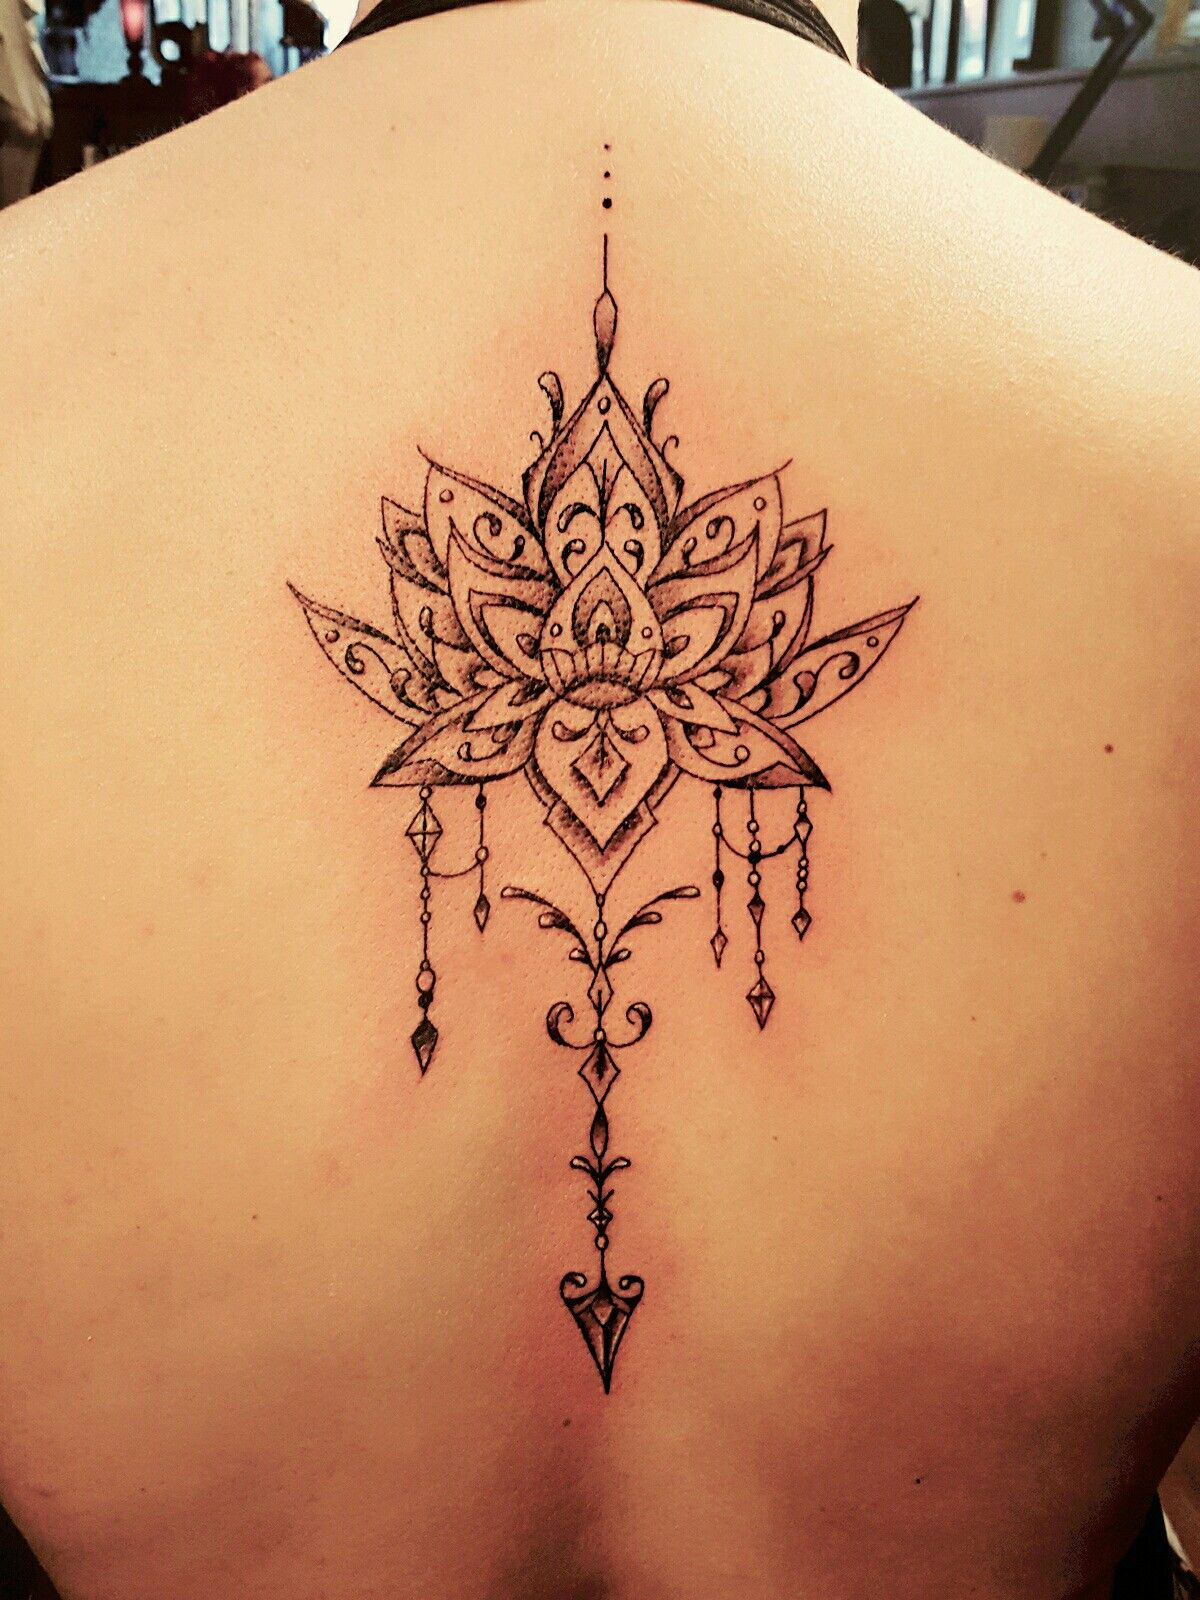 Newest addition to my tattoo addiction tattoos lotus aarow newest addition to my tattoo addiction tattoos lotus aarow izmirmasajfo